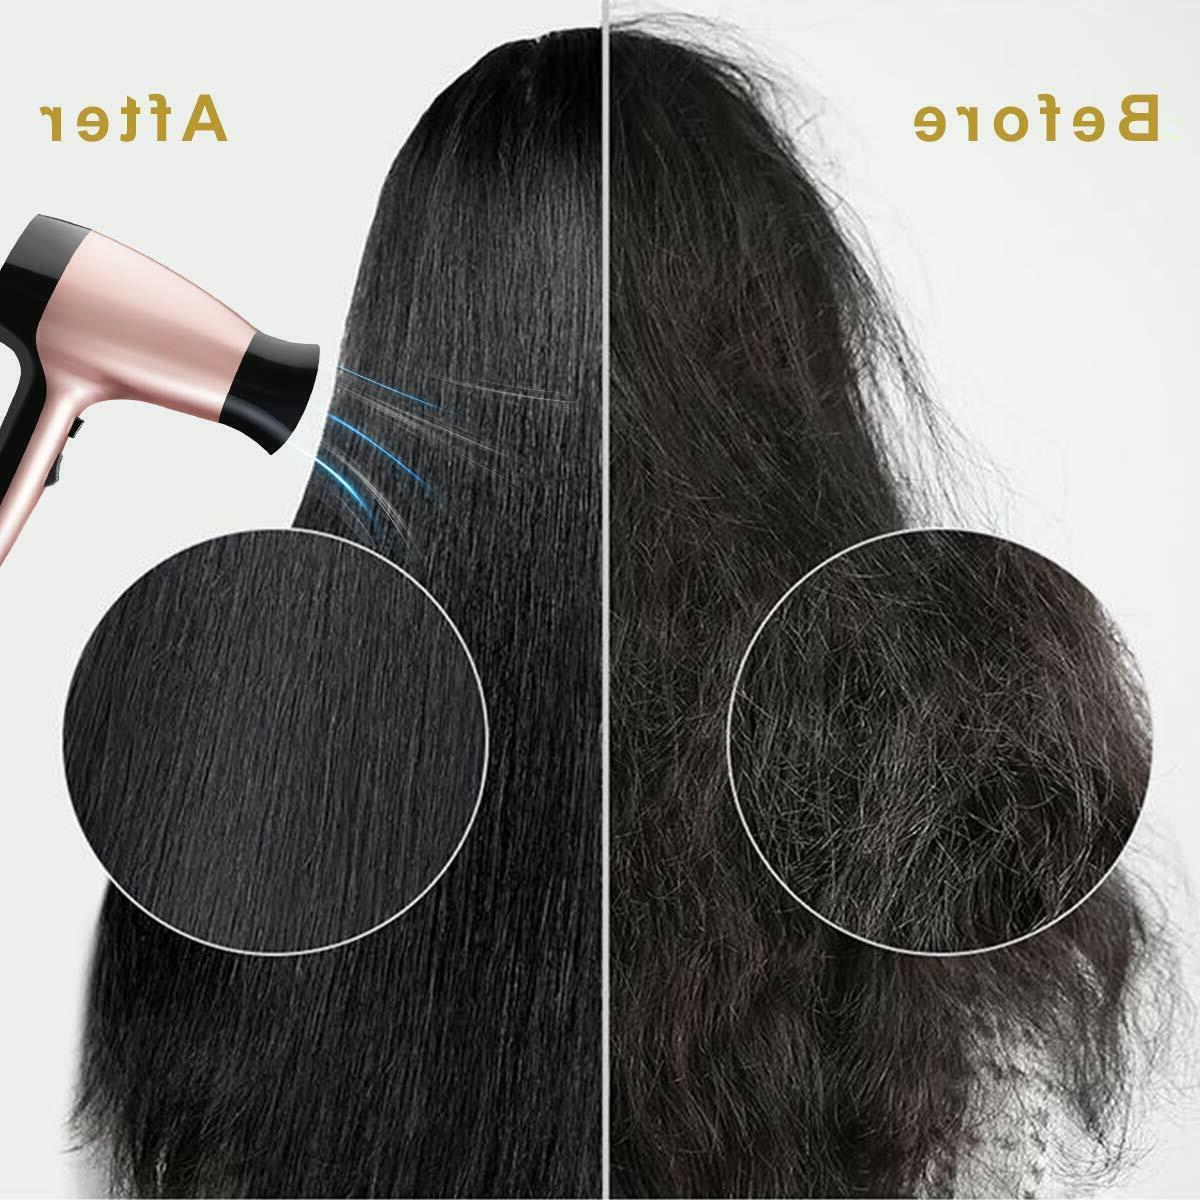 1600W Hair Cosyonall Small Compact & Lightweight